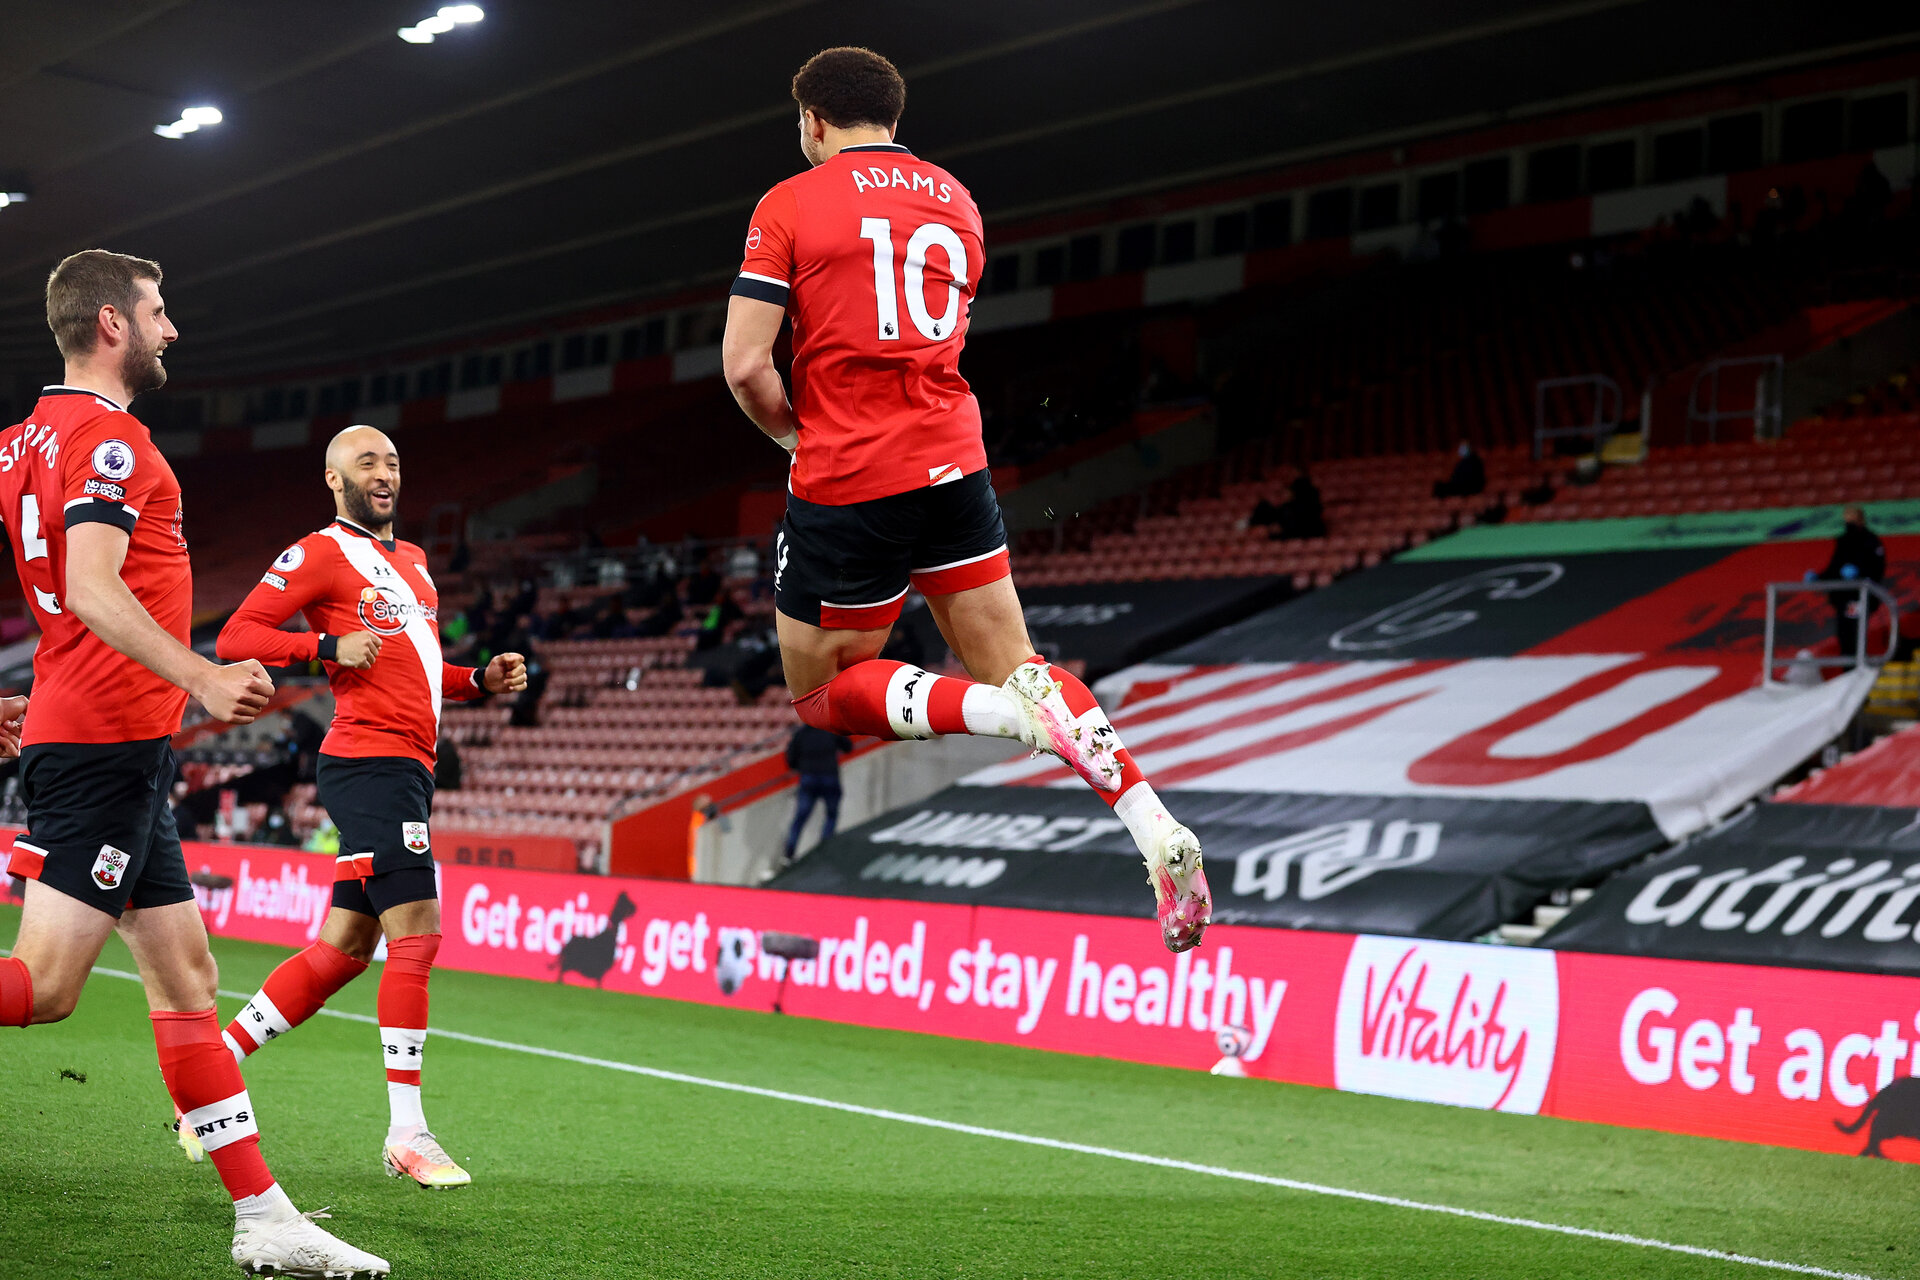 SOUTHAMPTON, ENGLAND - MAY 11: Che Adams(R) of Southampton after scoring during the Premier League match between Southampton and Crystal Palace at St Mary's Stadium on May 11, 2021 in Southampton, England. Sporting stadiums around the UK remain under strict restrictions due to the Coronavirus Pandemic as Government social distancing laws prohibit fans inside venues resulting in games being played behind closed doors.  (Photo by Matt Watson/Southampton FC via Getty Images)